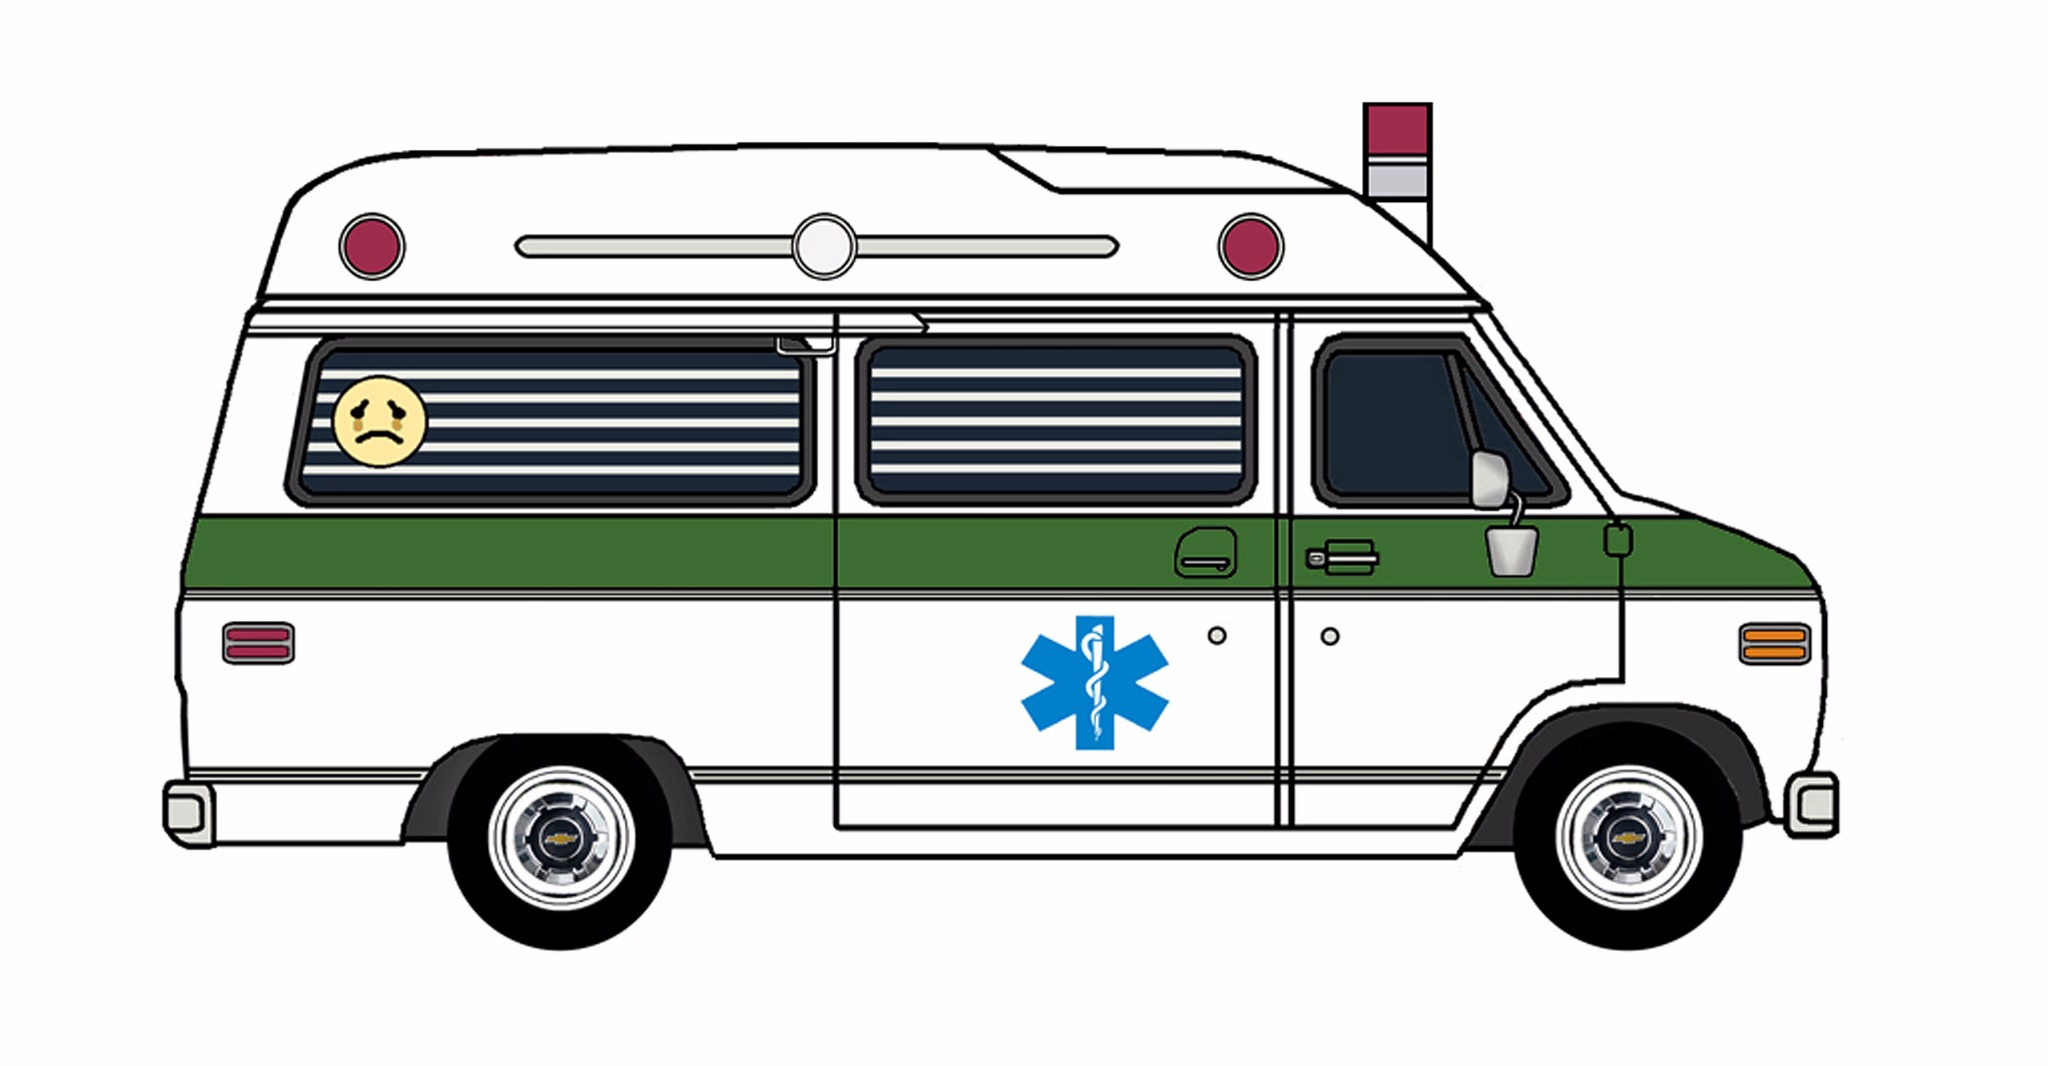 1977 Chevy G20 Ambulance WHITE & EVERGREEN